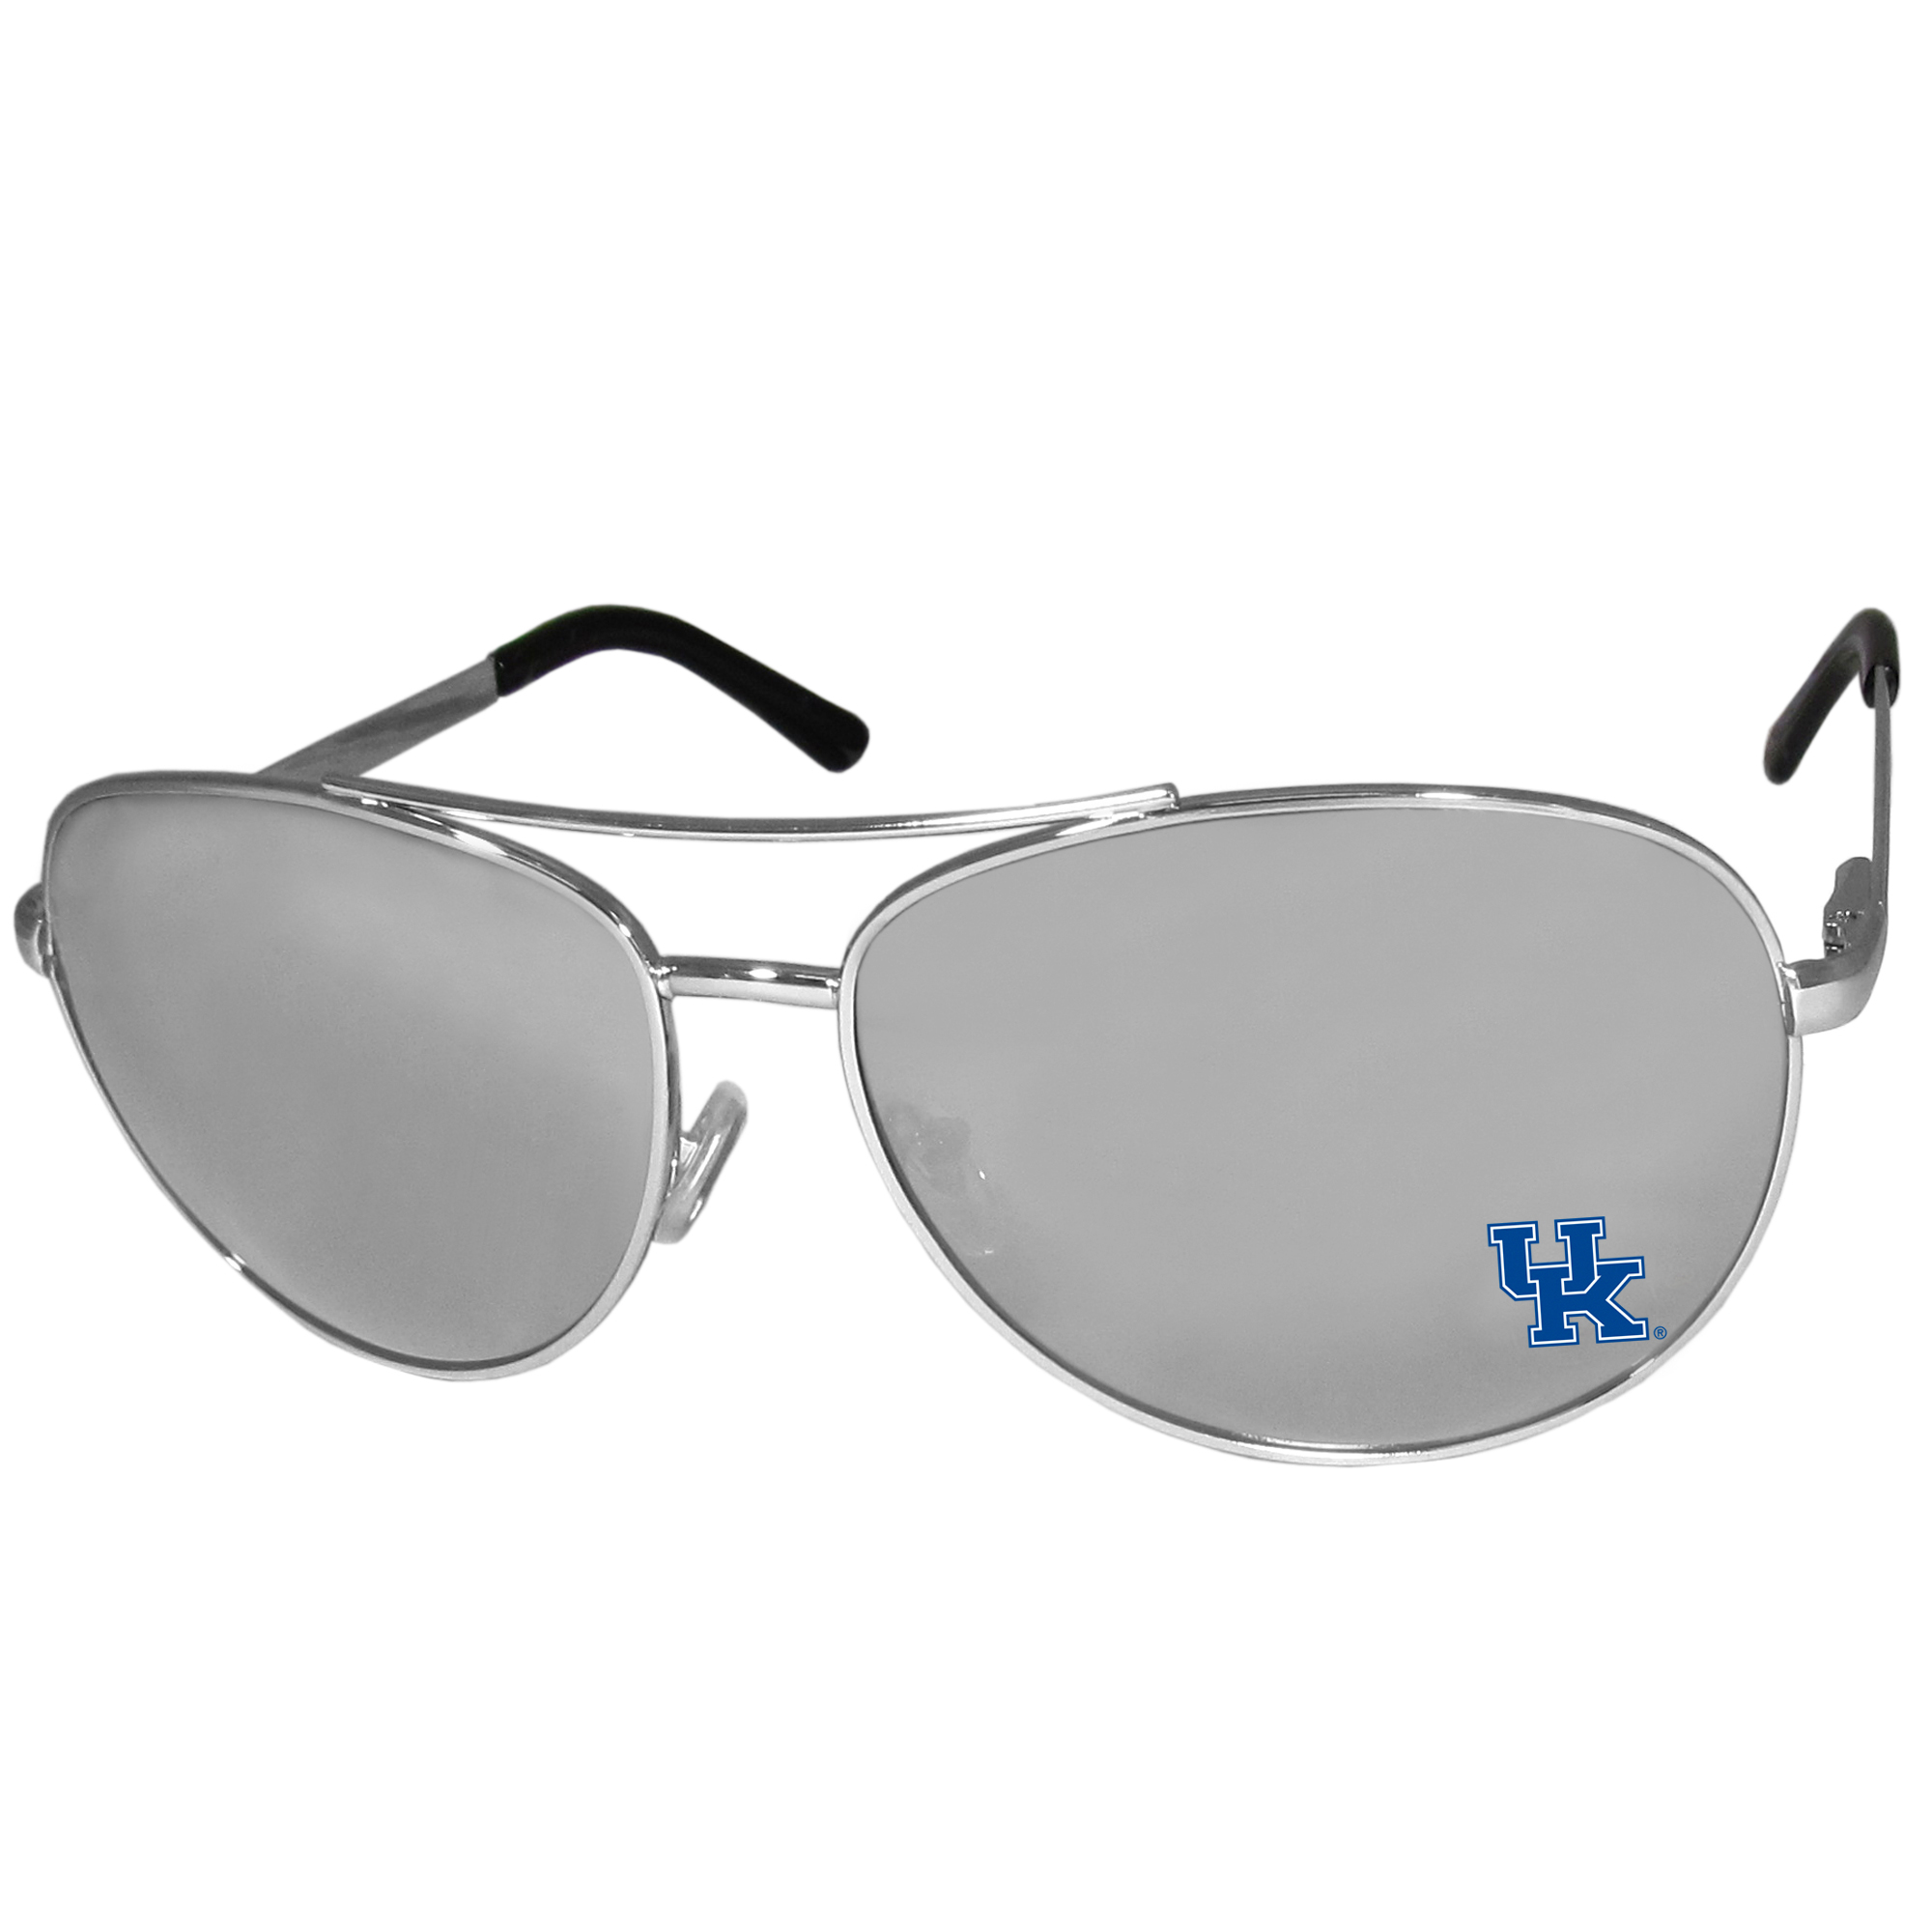 Kentucky Wildcats Aviator Sunglasses - Our aviator sunglasses have the iconic aviator style with mirrored lenses and metal frames. The glasses feature a silk screened Kentucky Wildcats logo in the corner of the lense. 100% UVA/UVB protection.